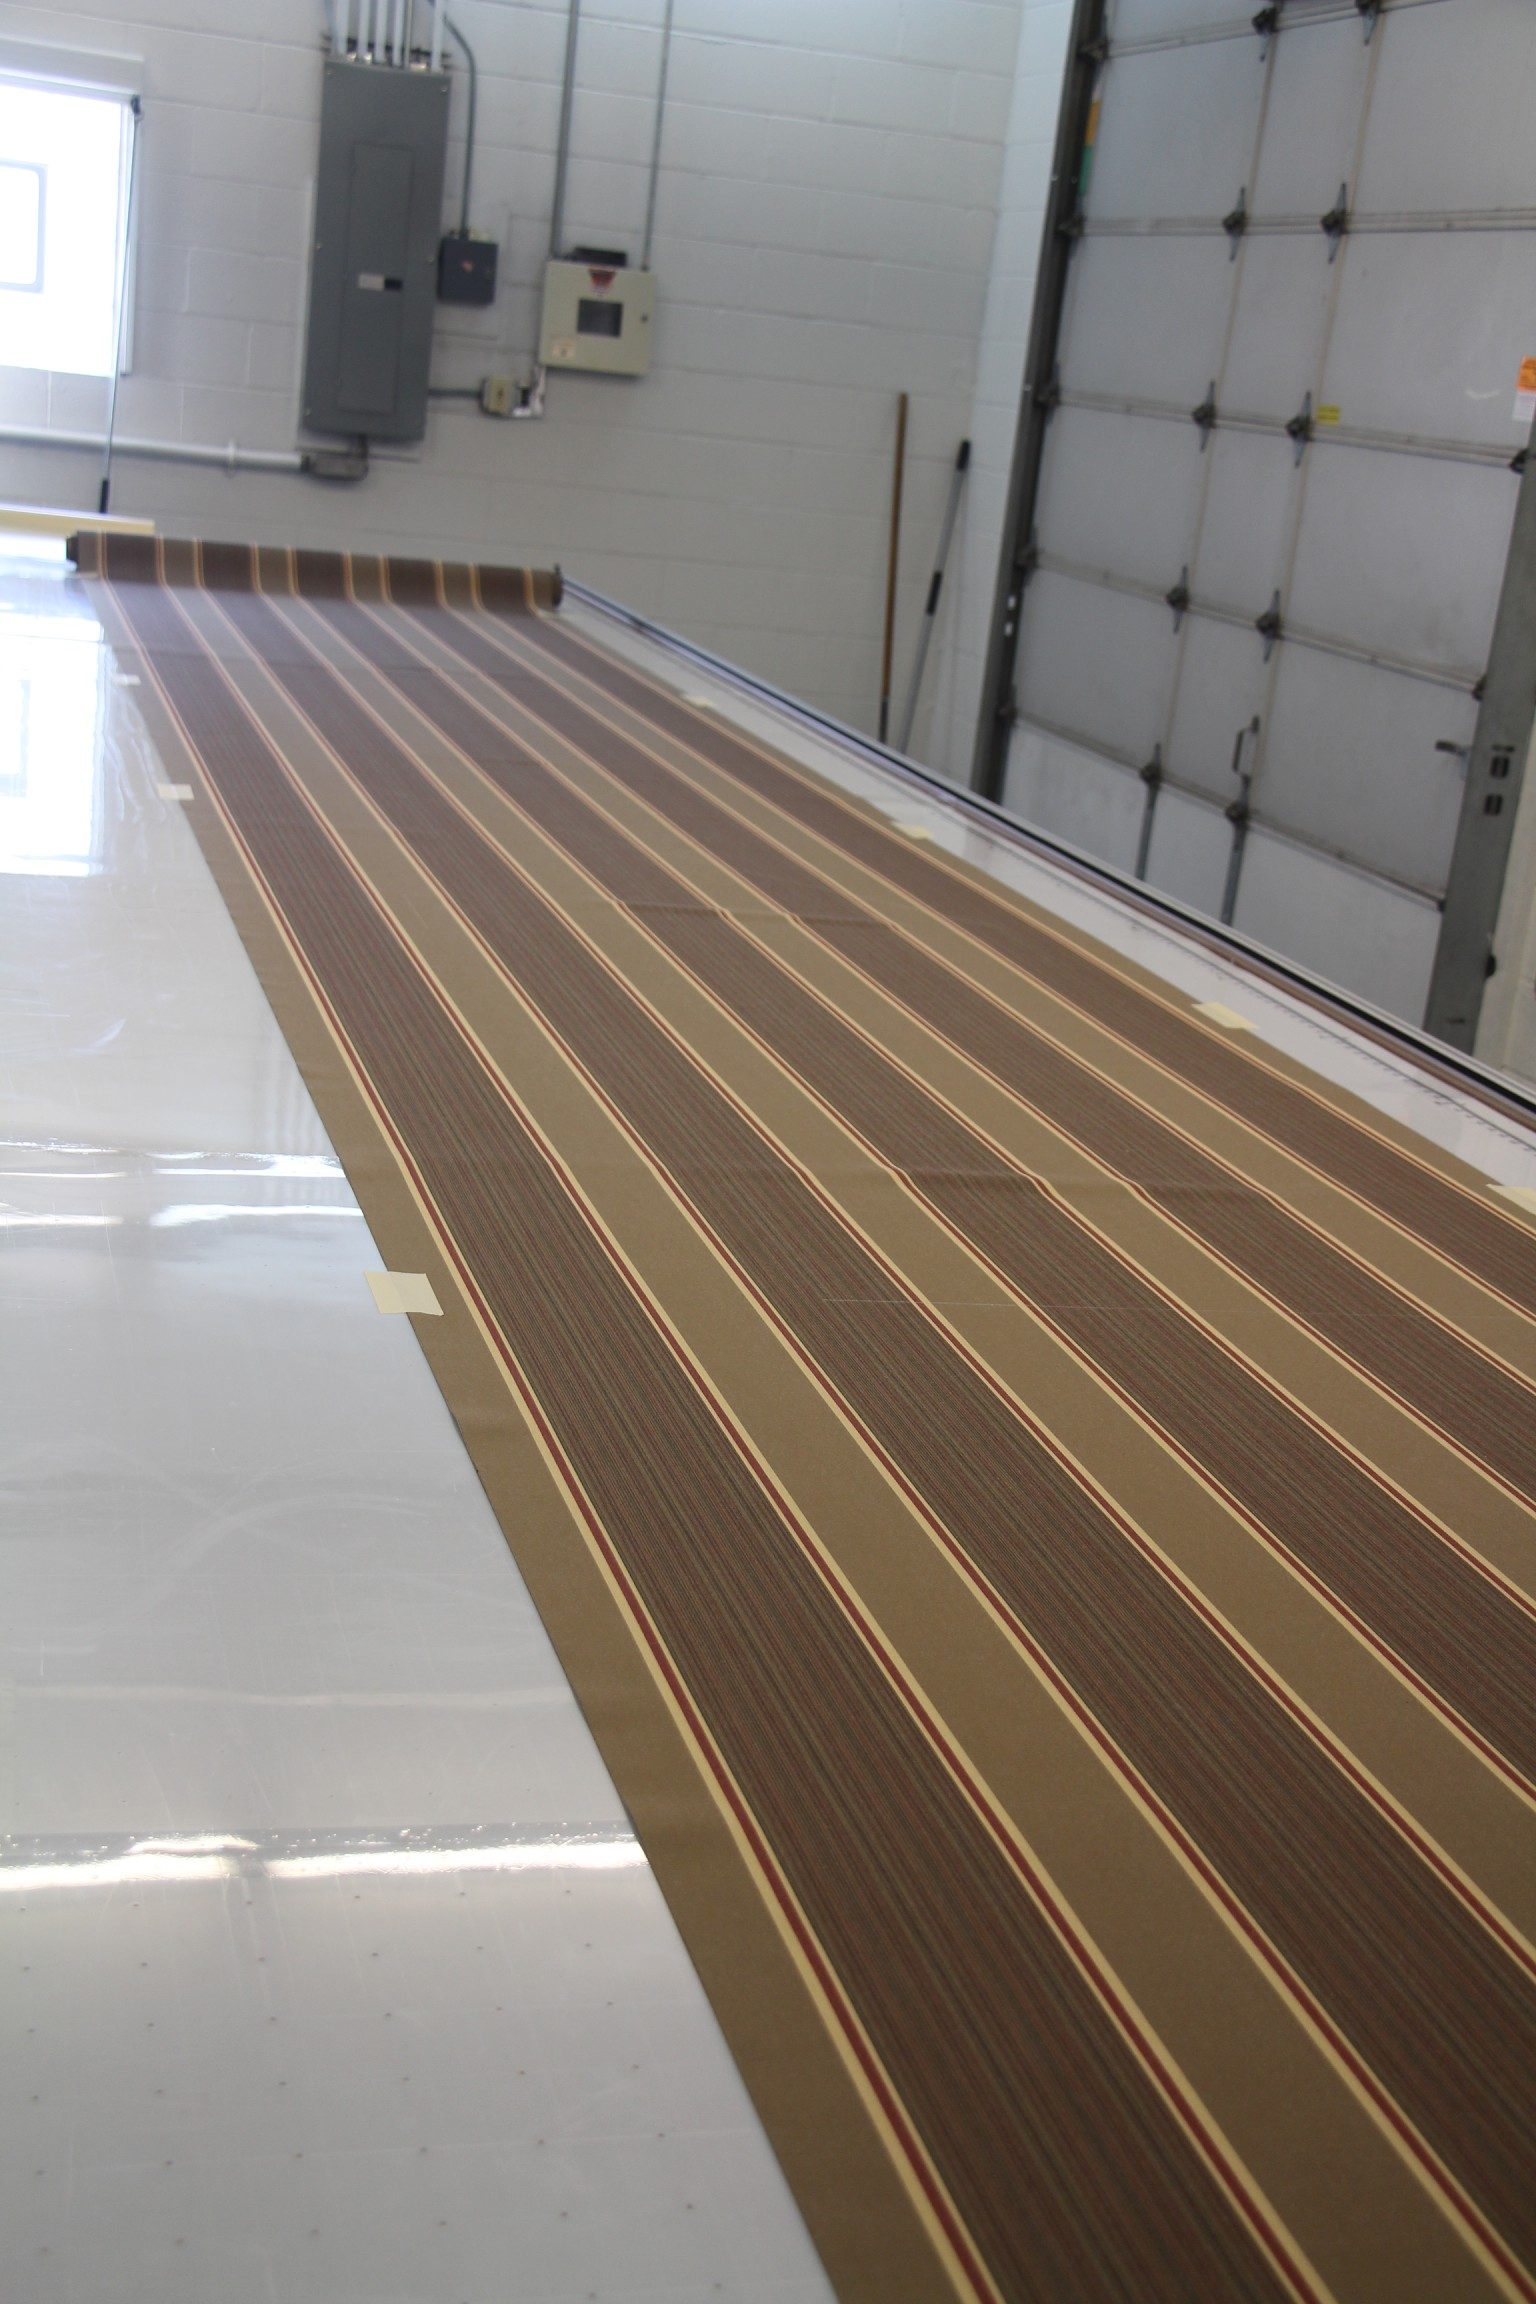 We now prepare to cut our pattern on some striped Sunbrella.